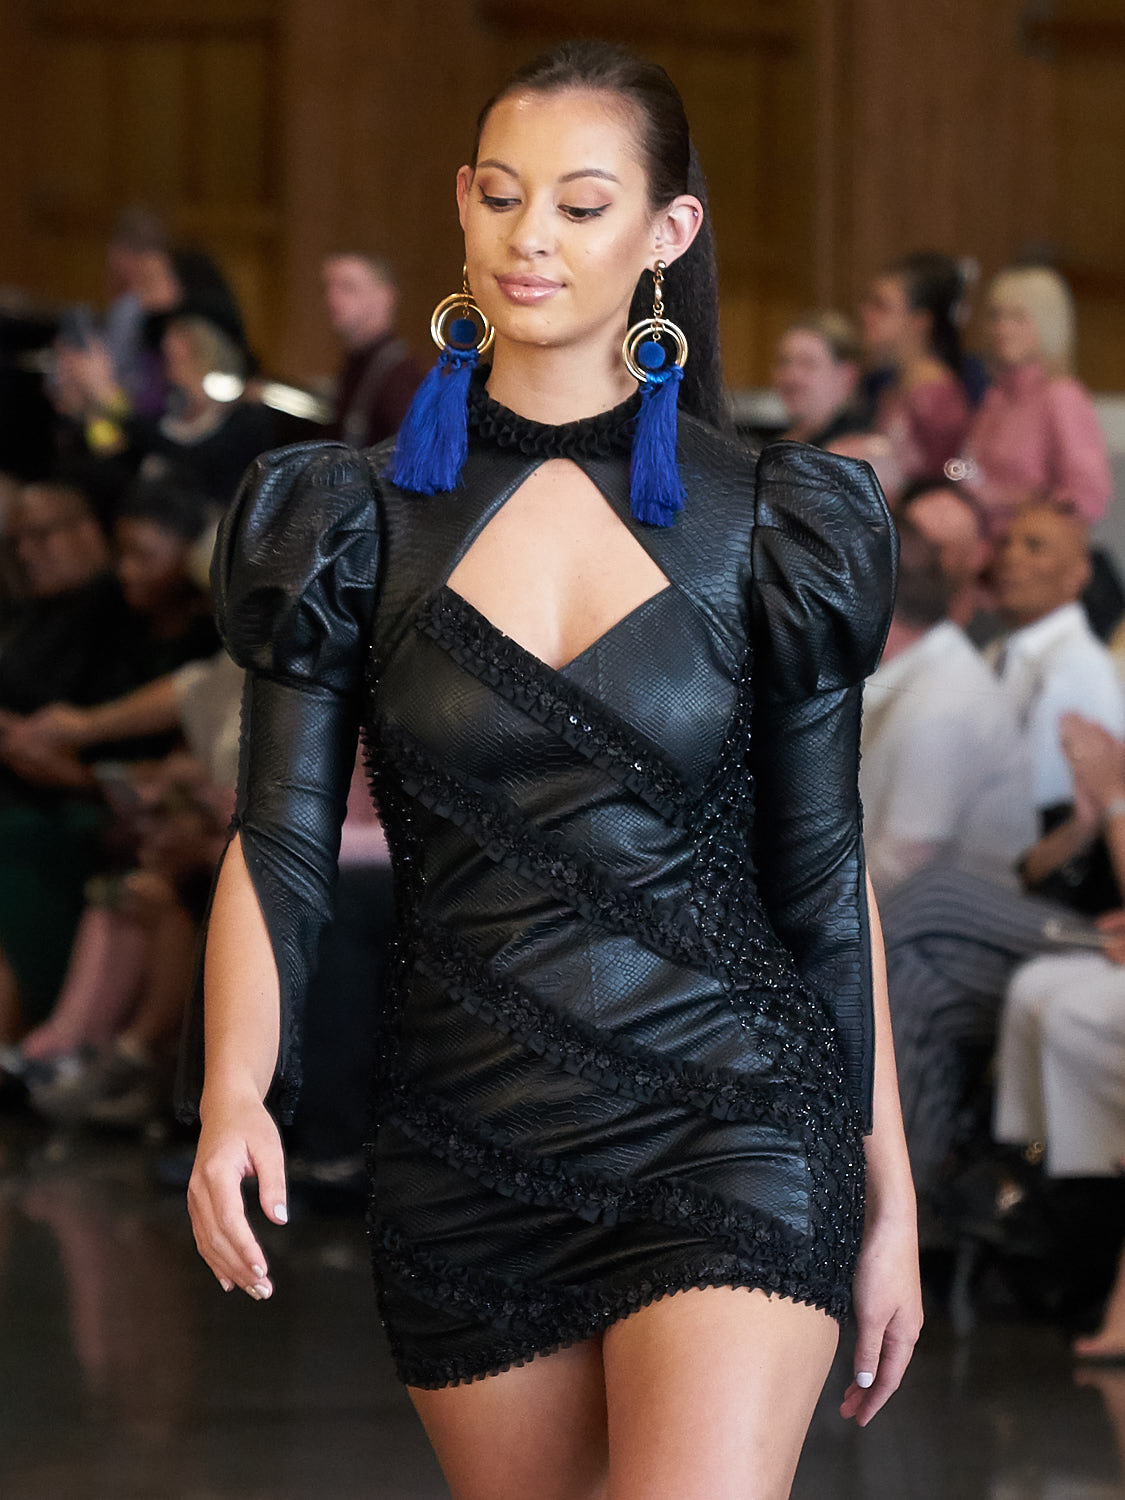 AMVISUALS-Couture-Cars-Fashion-Show-LeMay-Museum-Tacoma-Fashion-13.jpg